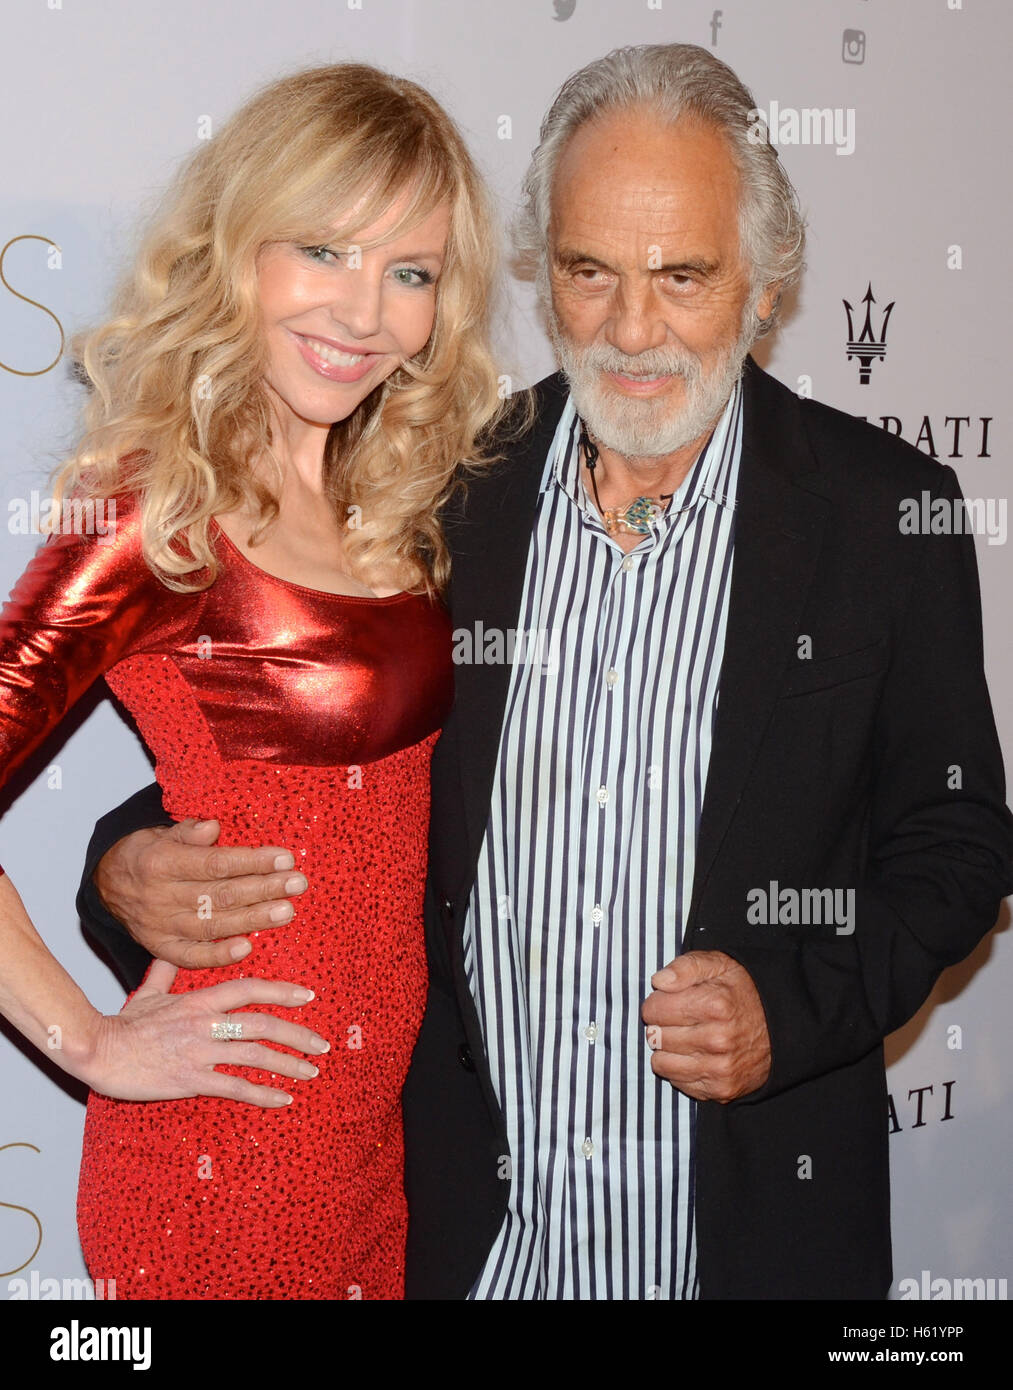 Shelby Chong next movie